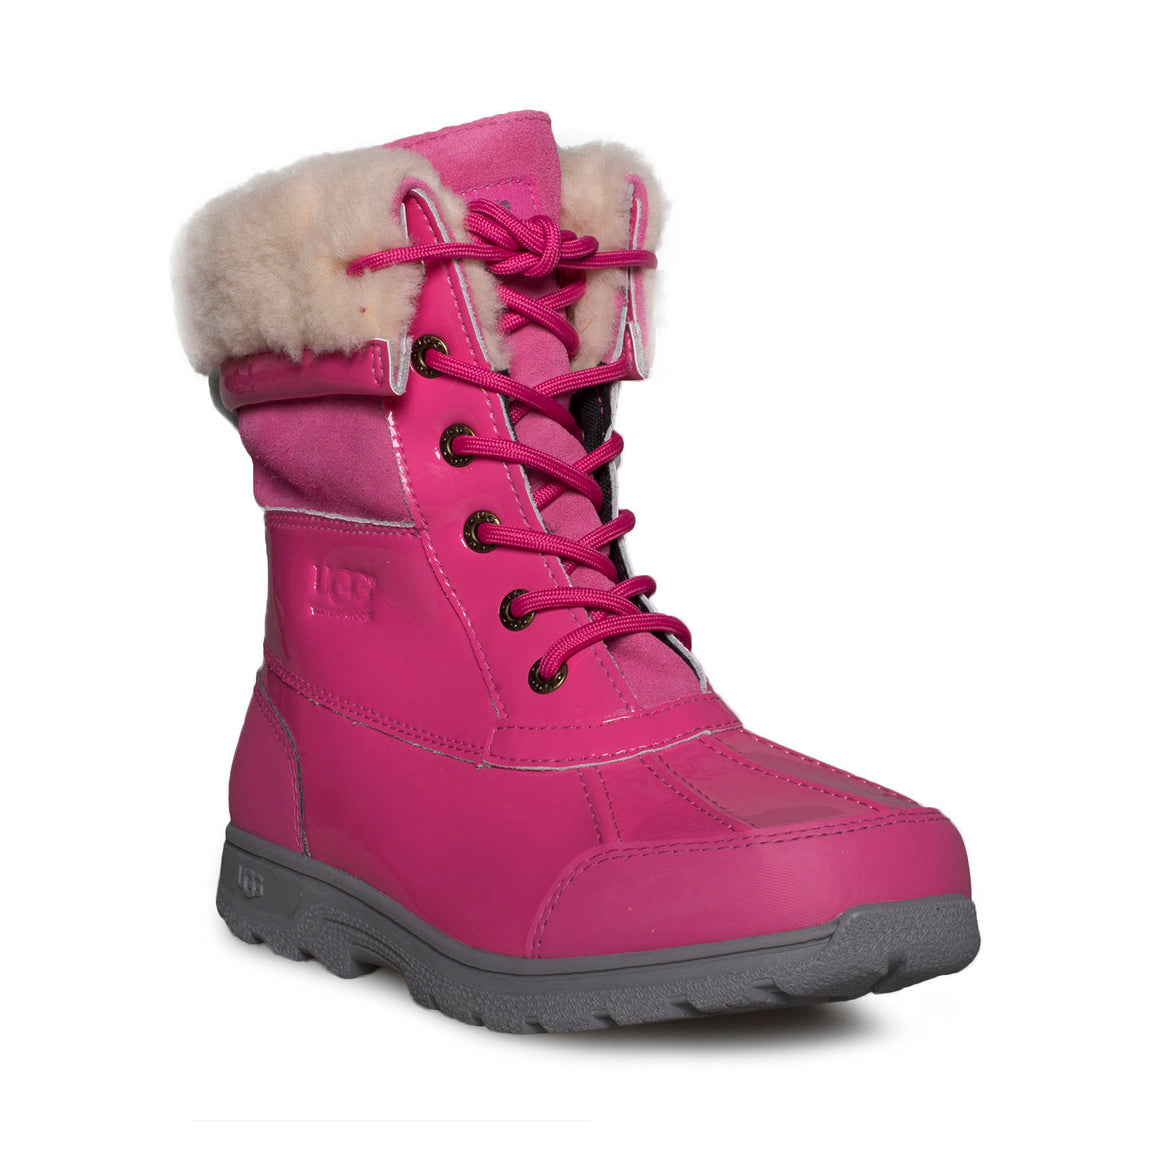 UGG Butte II Patent Dove Pink Boots - Youth